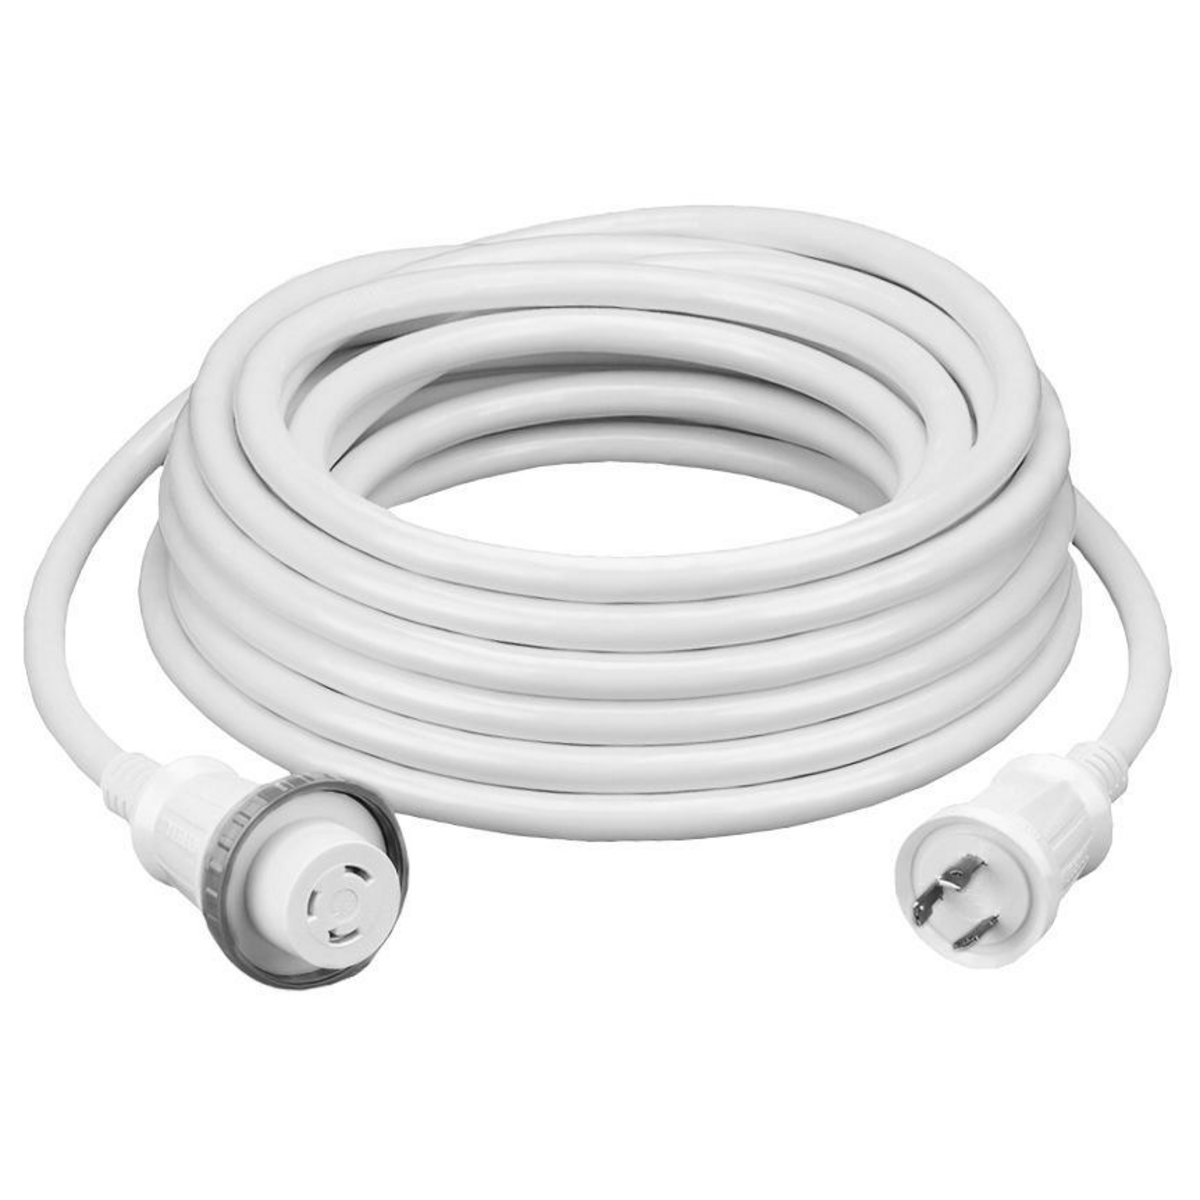 Hubbell HBL61CM08W Marine CABLE, 50', 30A 125V, WH